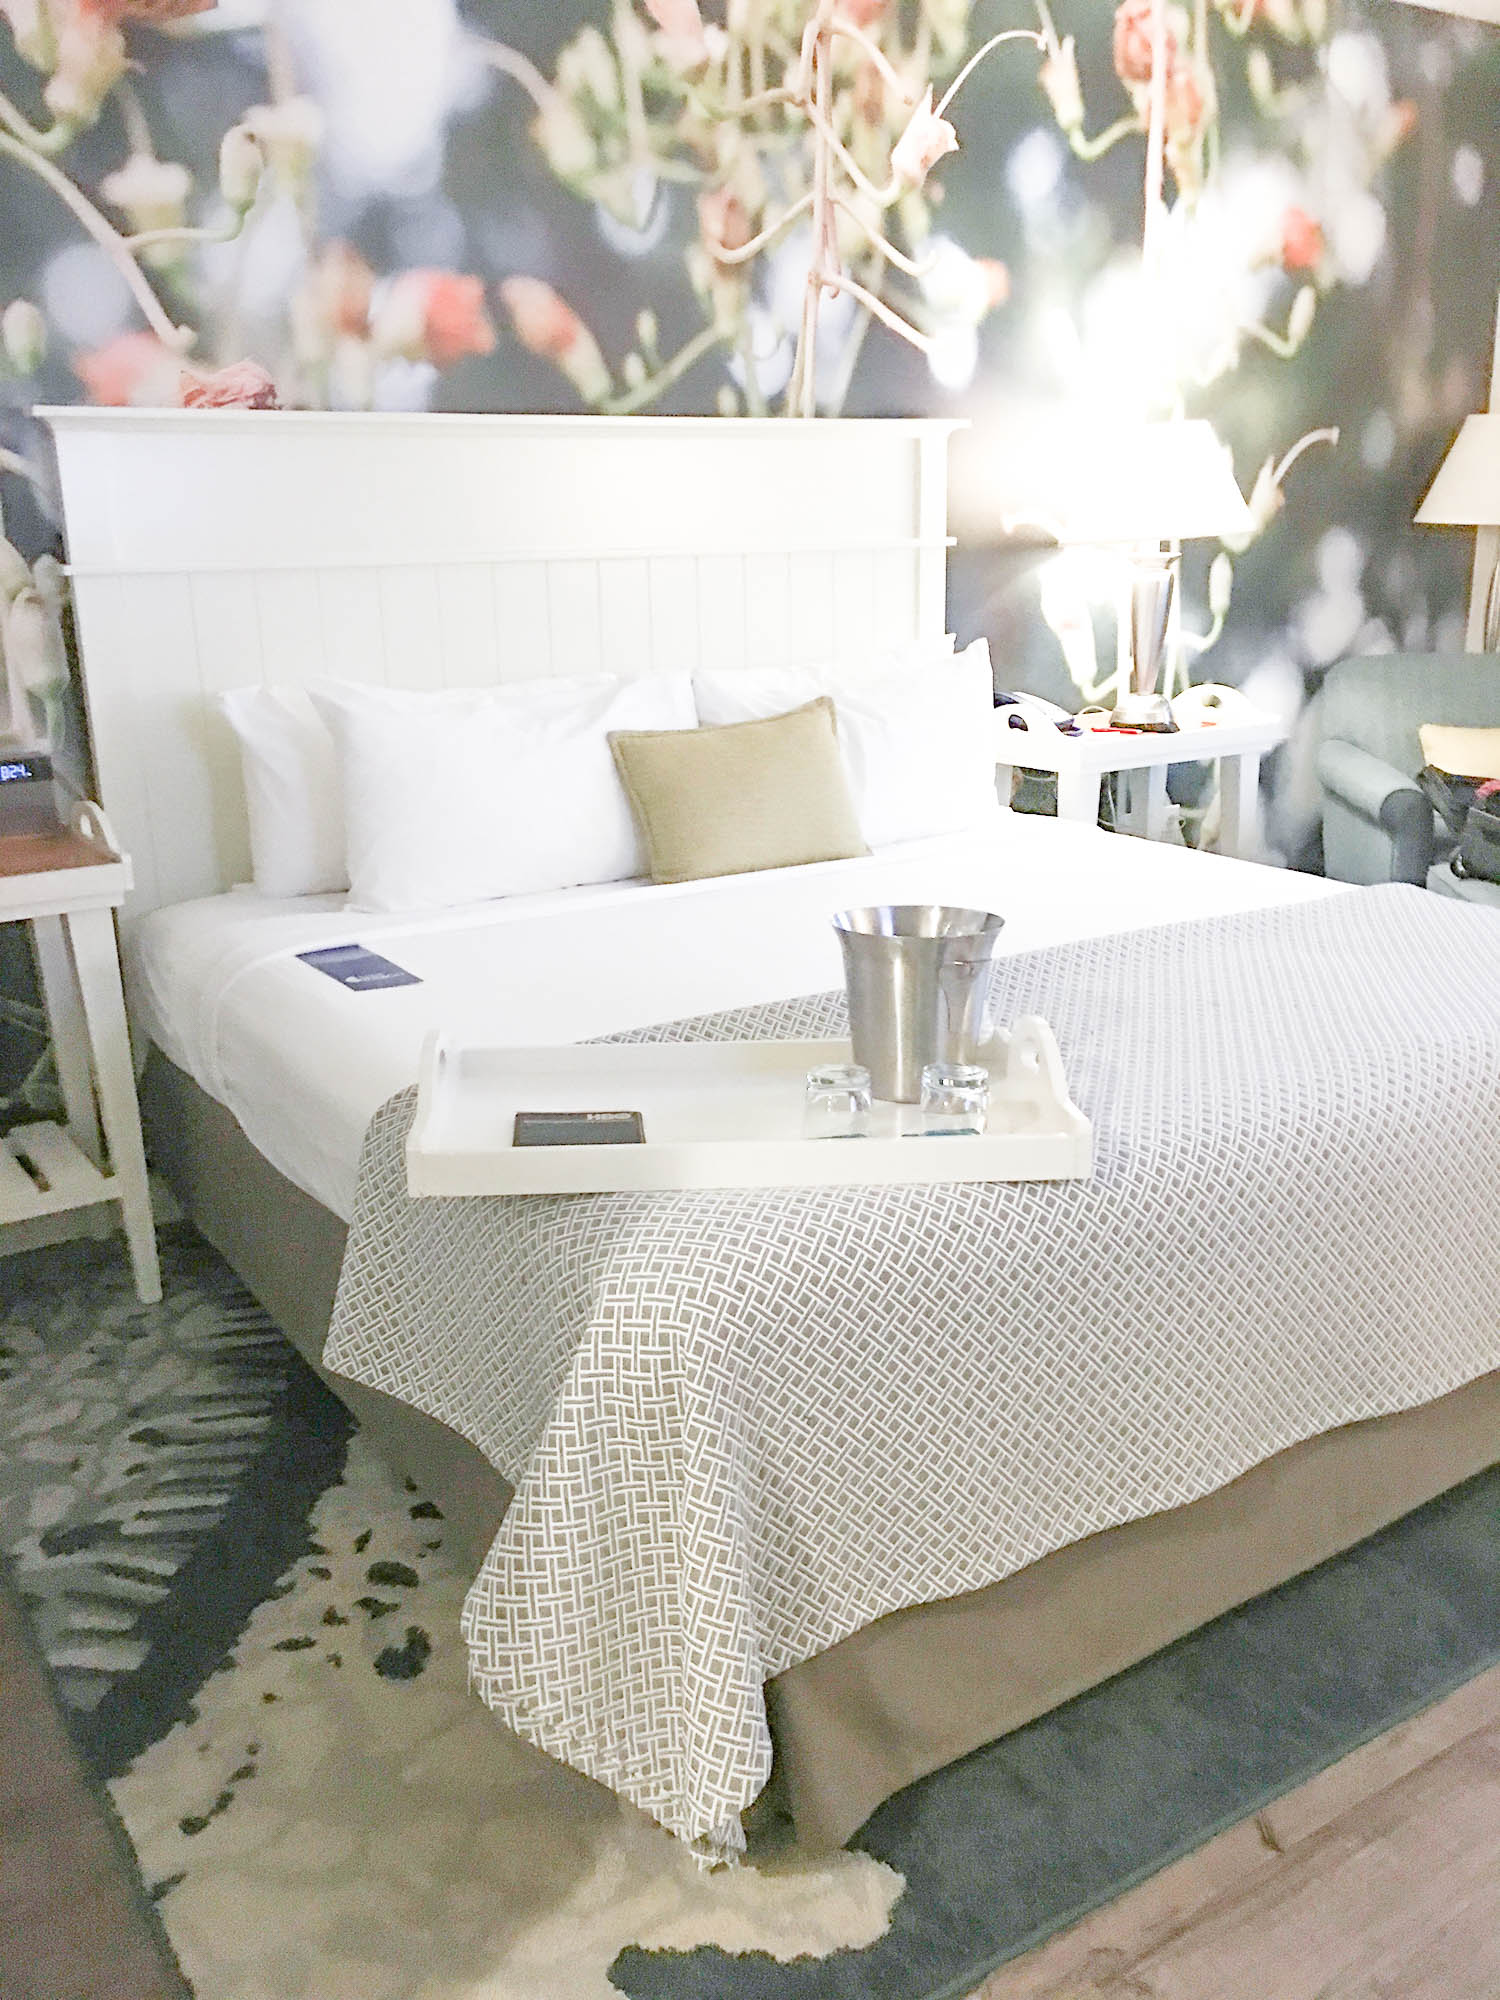 Where to Stay: Hotel Indigo Sarasota - Bianca Dottin